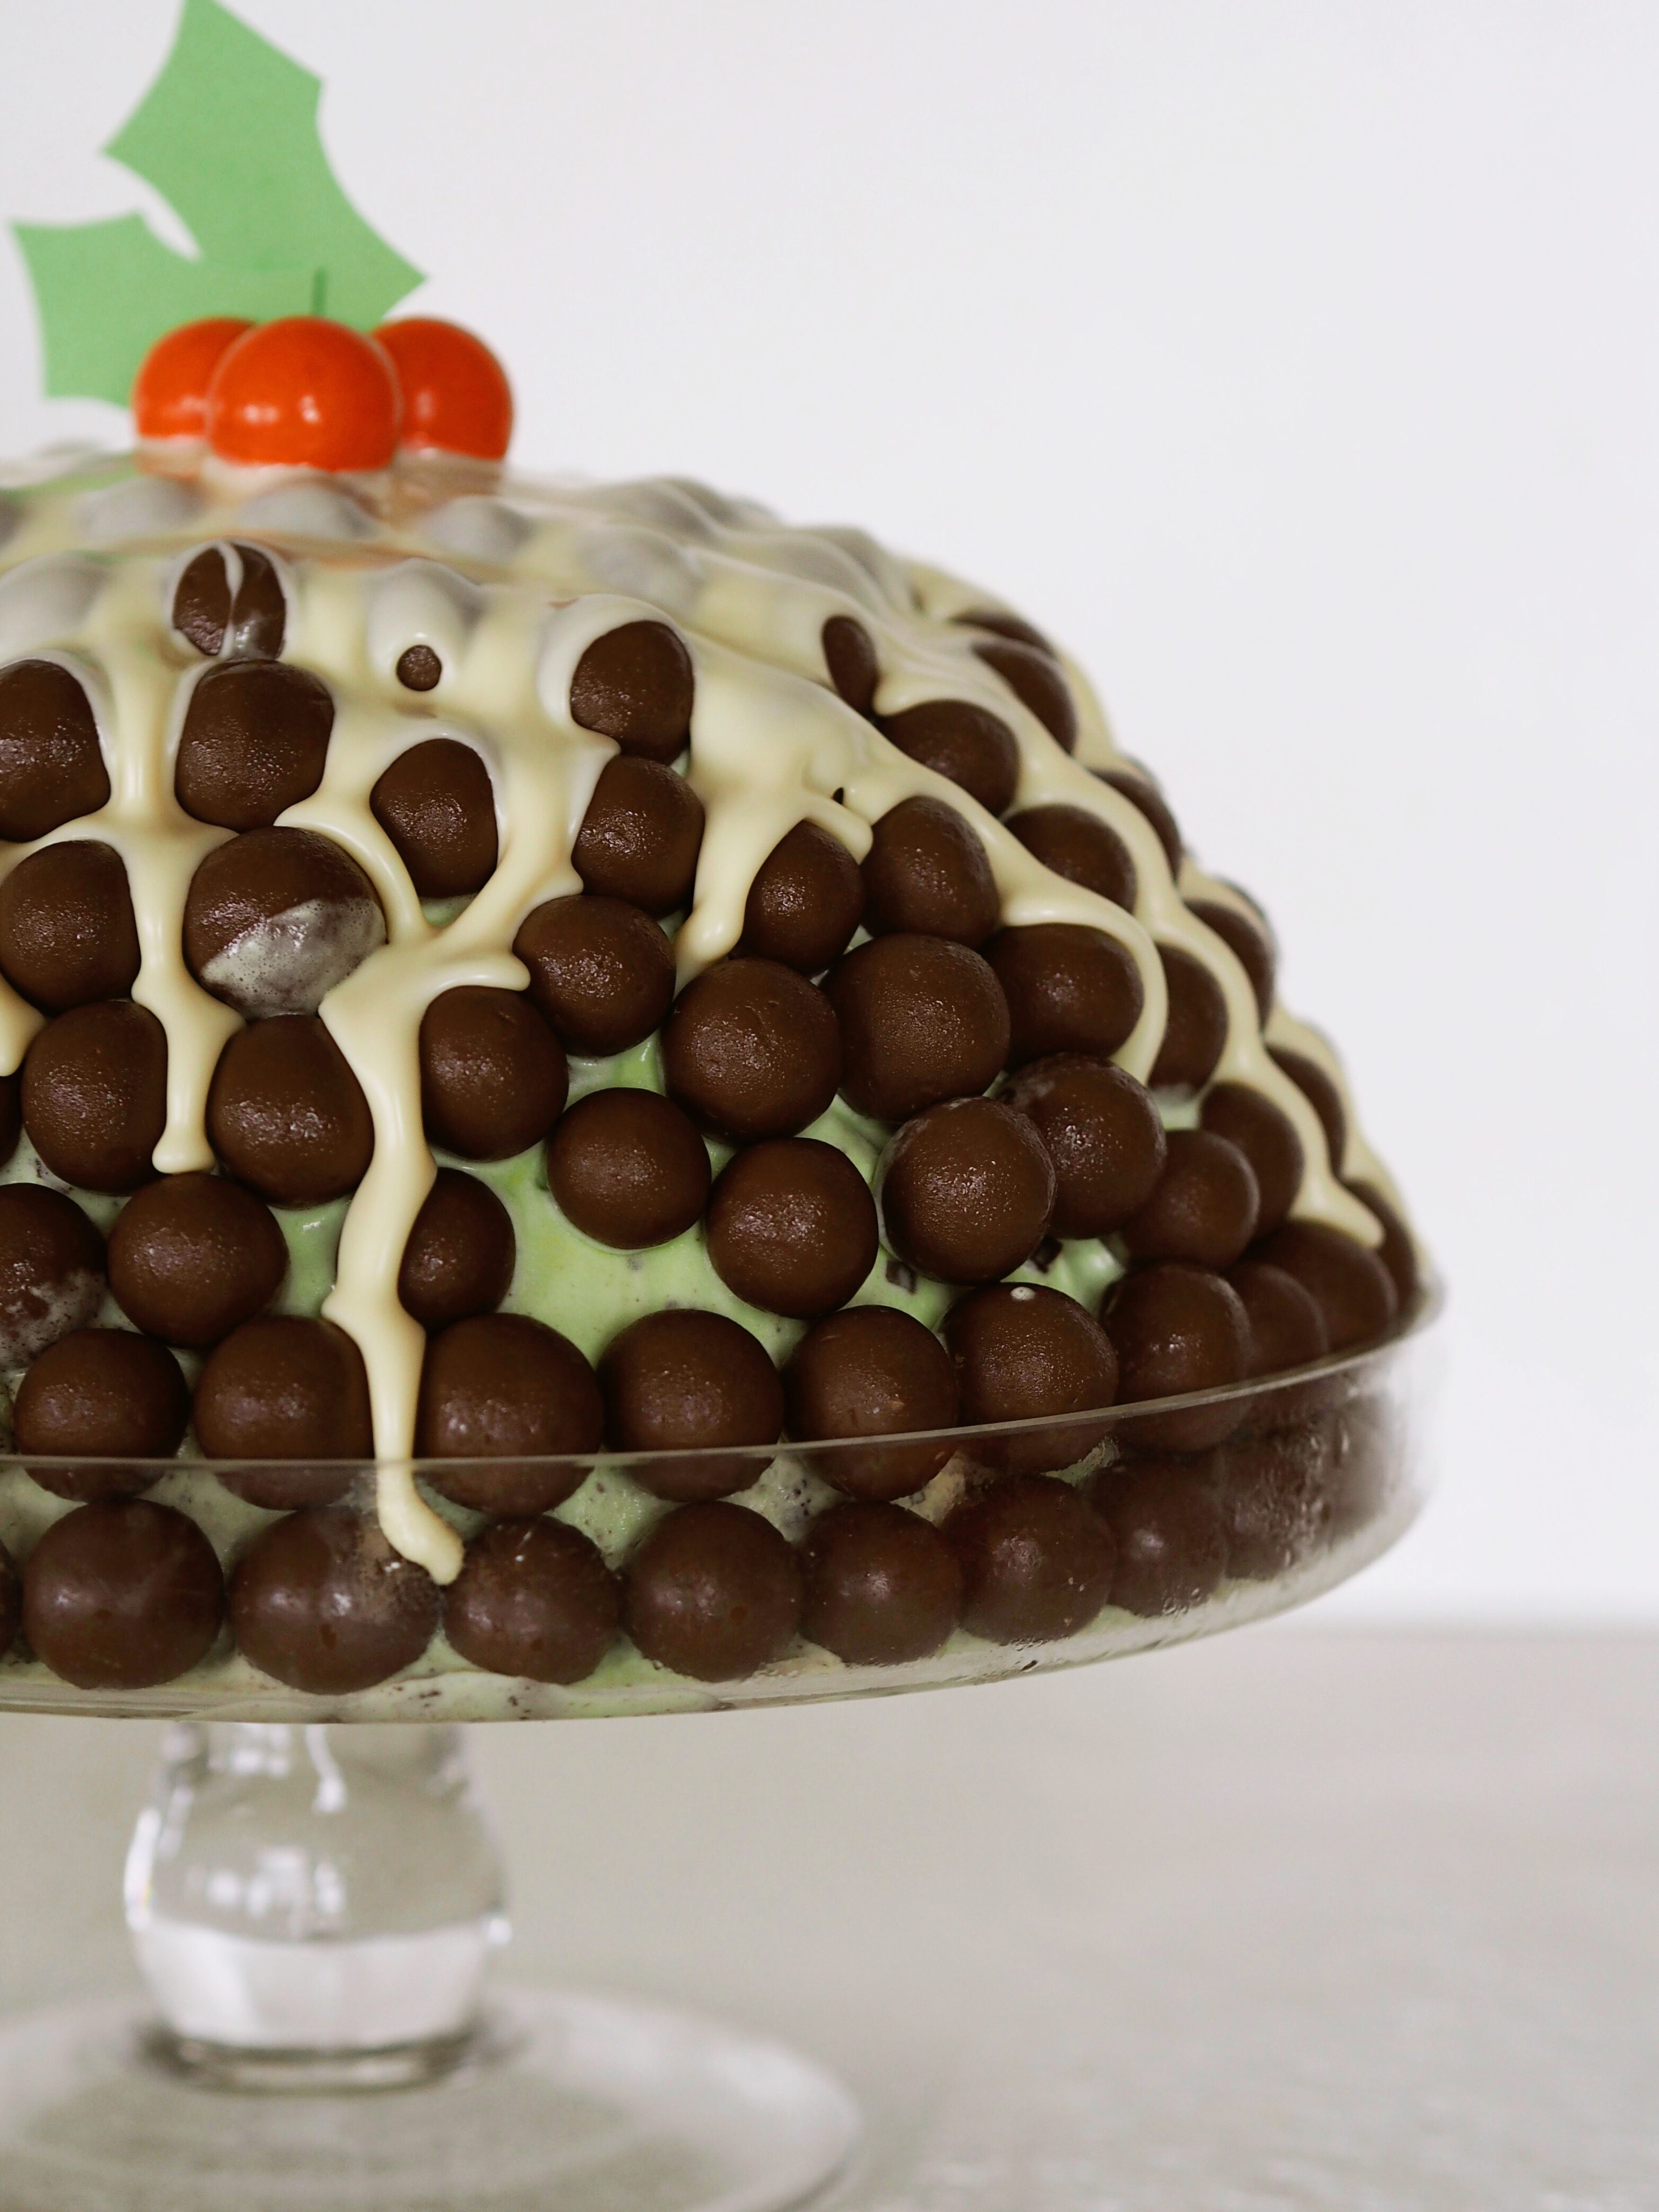 Malteser Ice Cream Christmas Cake